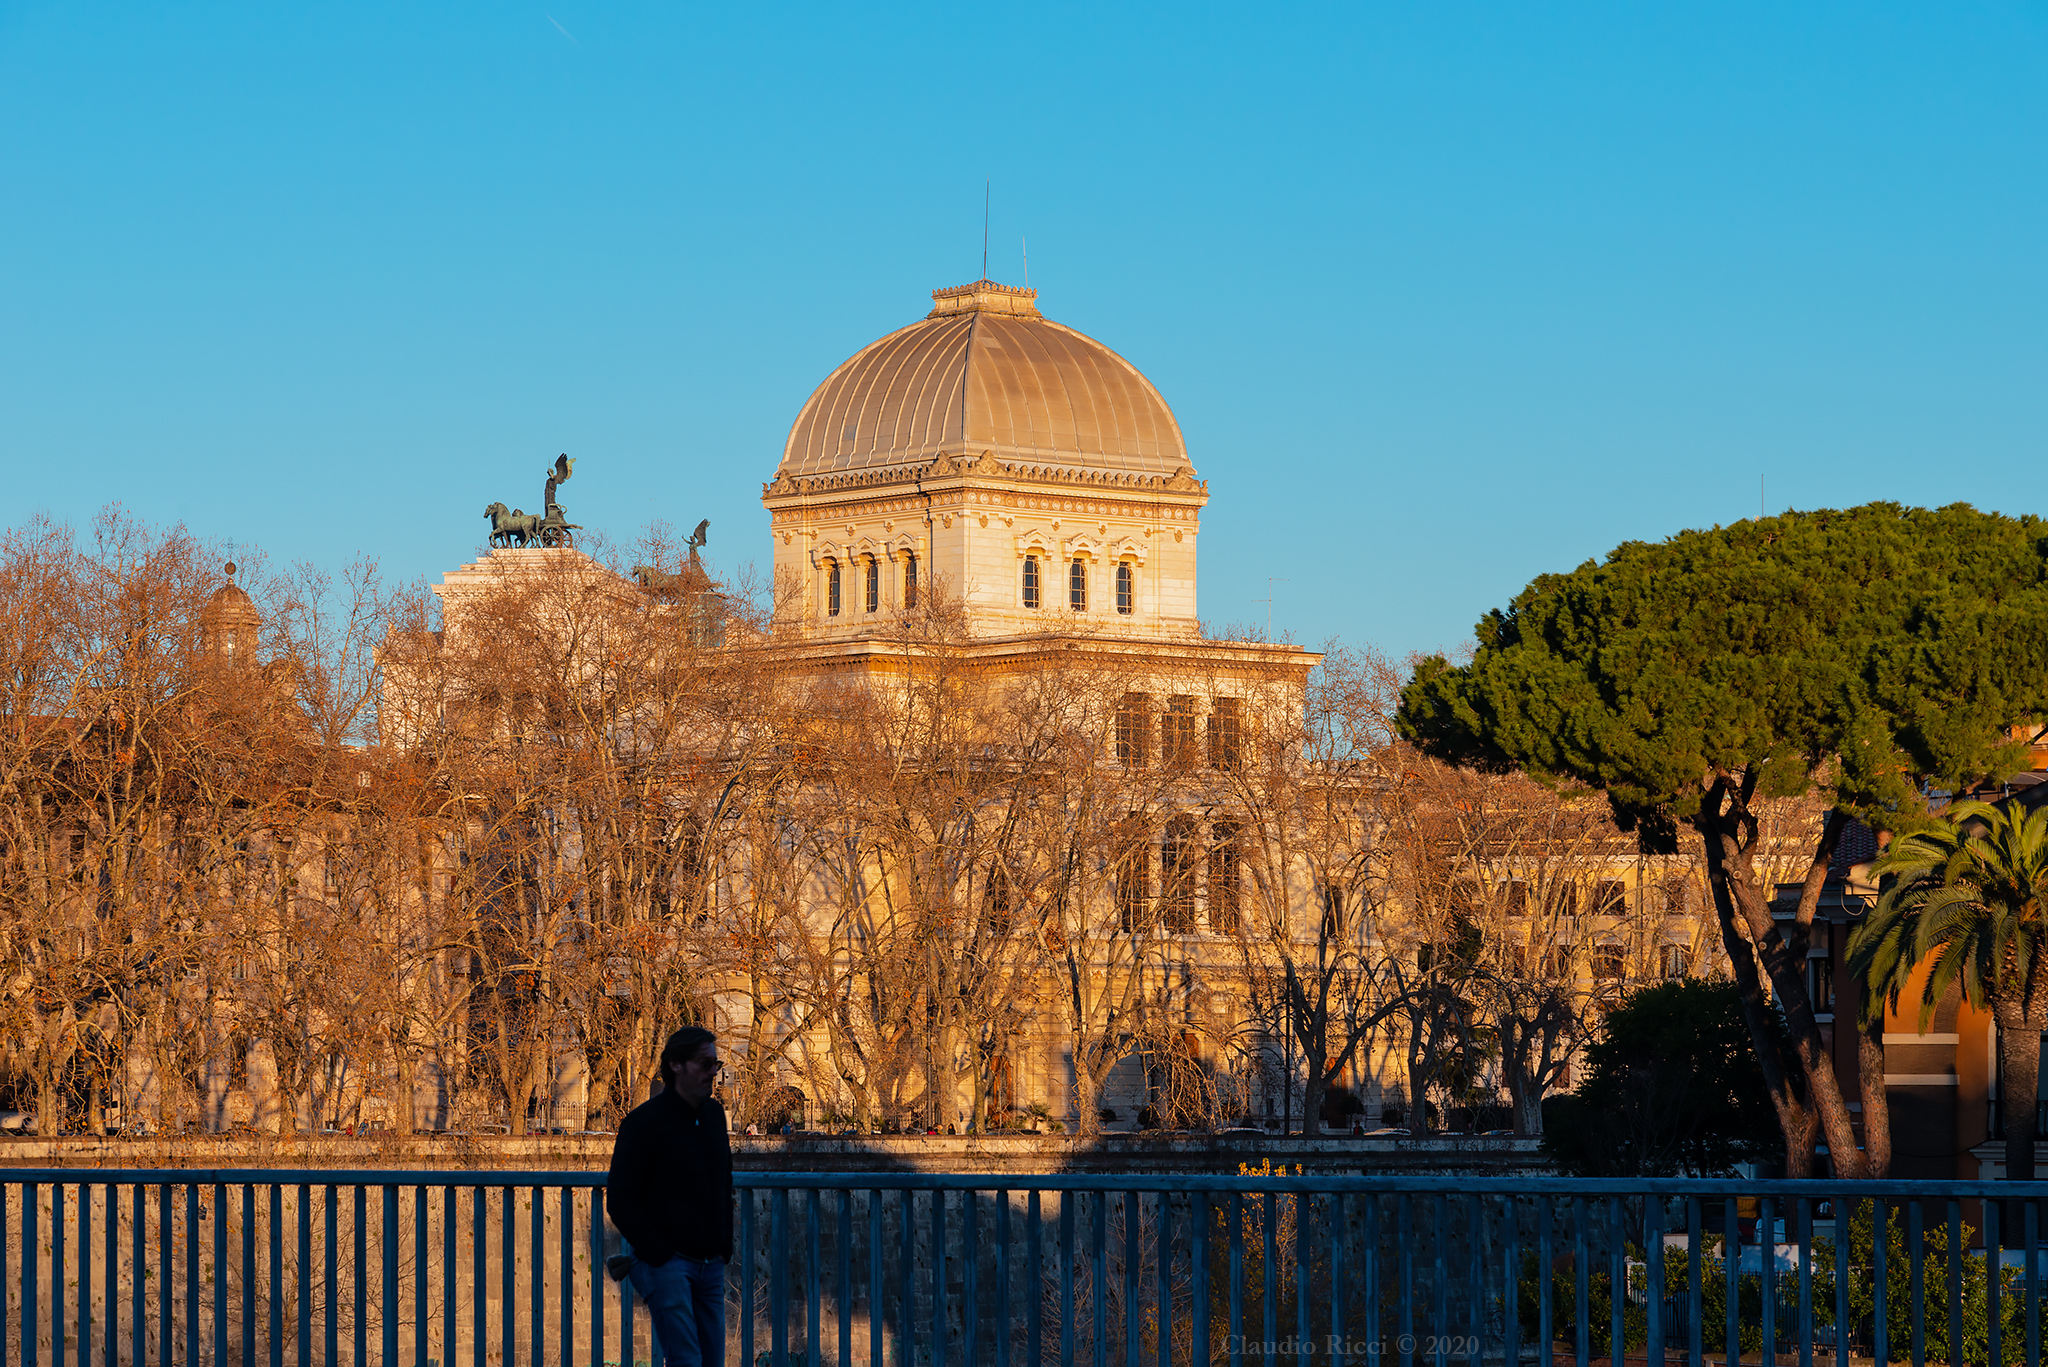 Longtevere and Synagogue, Rome 6 January 2020...